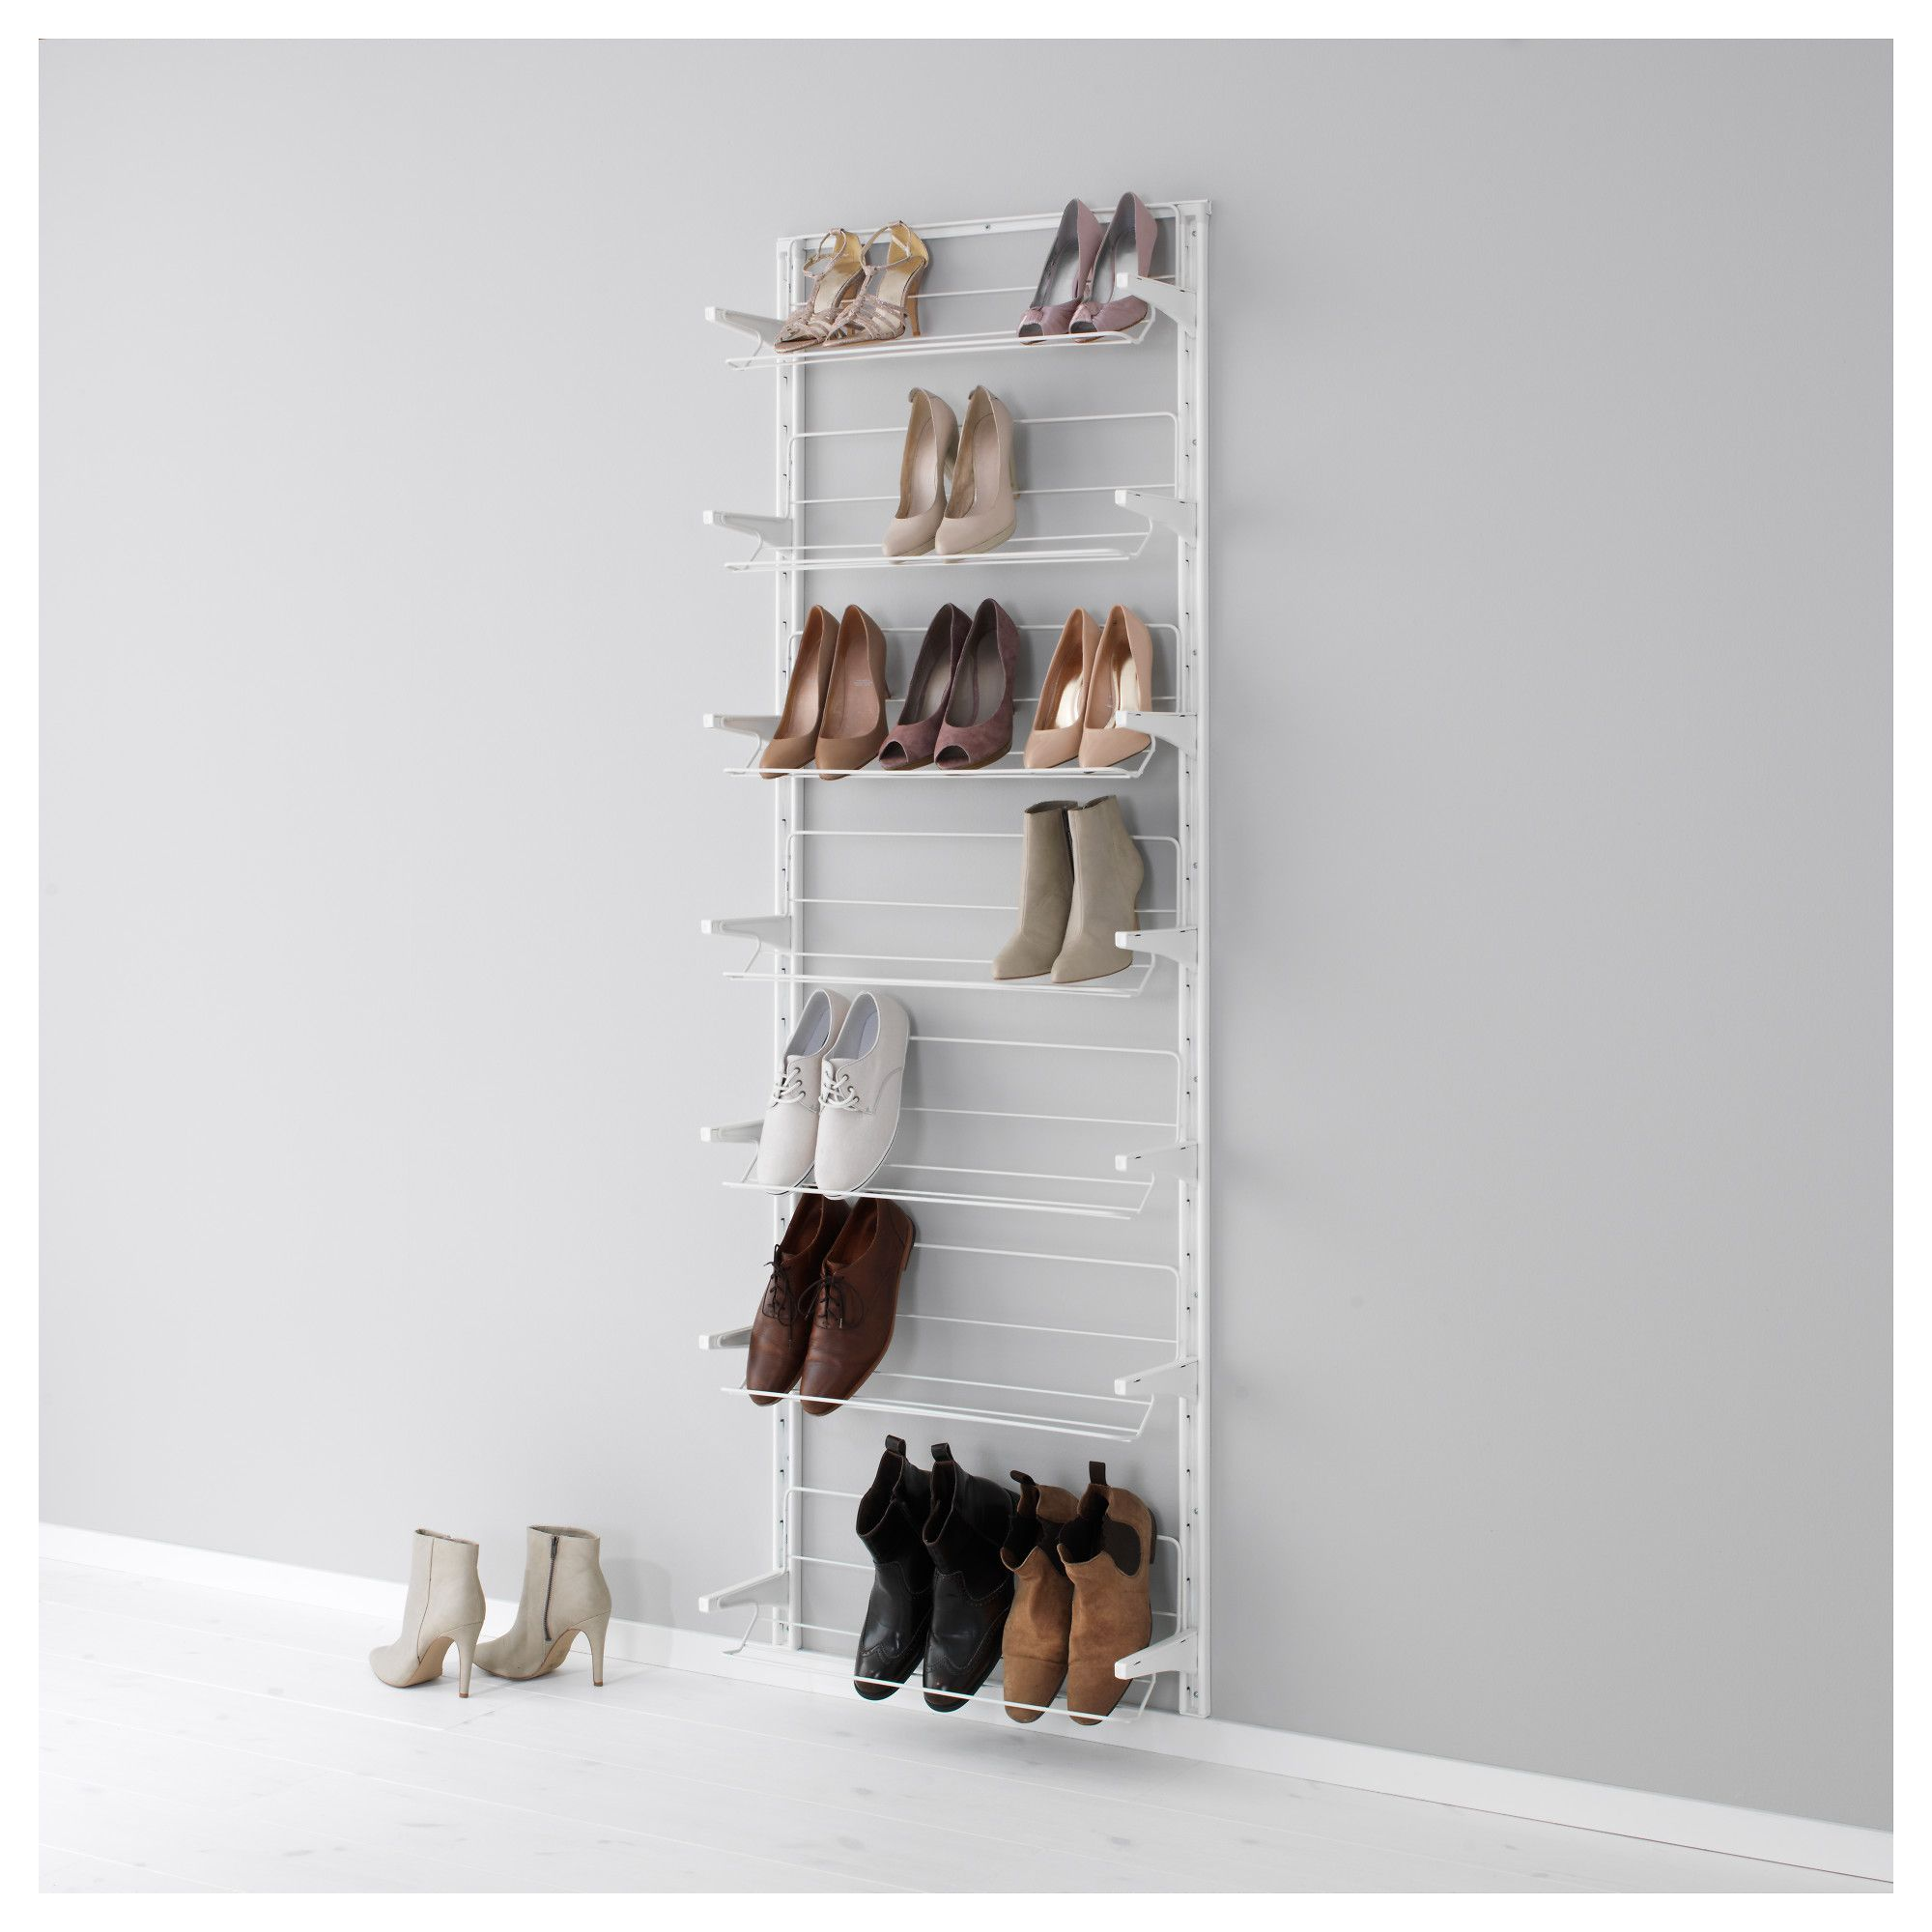 algot cr maill re range chaussures blanc shoes organizer ikea algot and walls. Black Bedroom Furniture Sets. Home Design Ideas